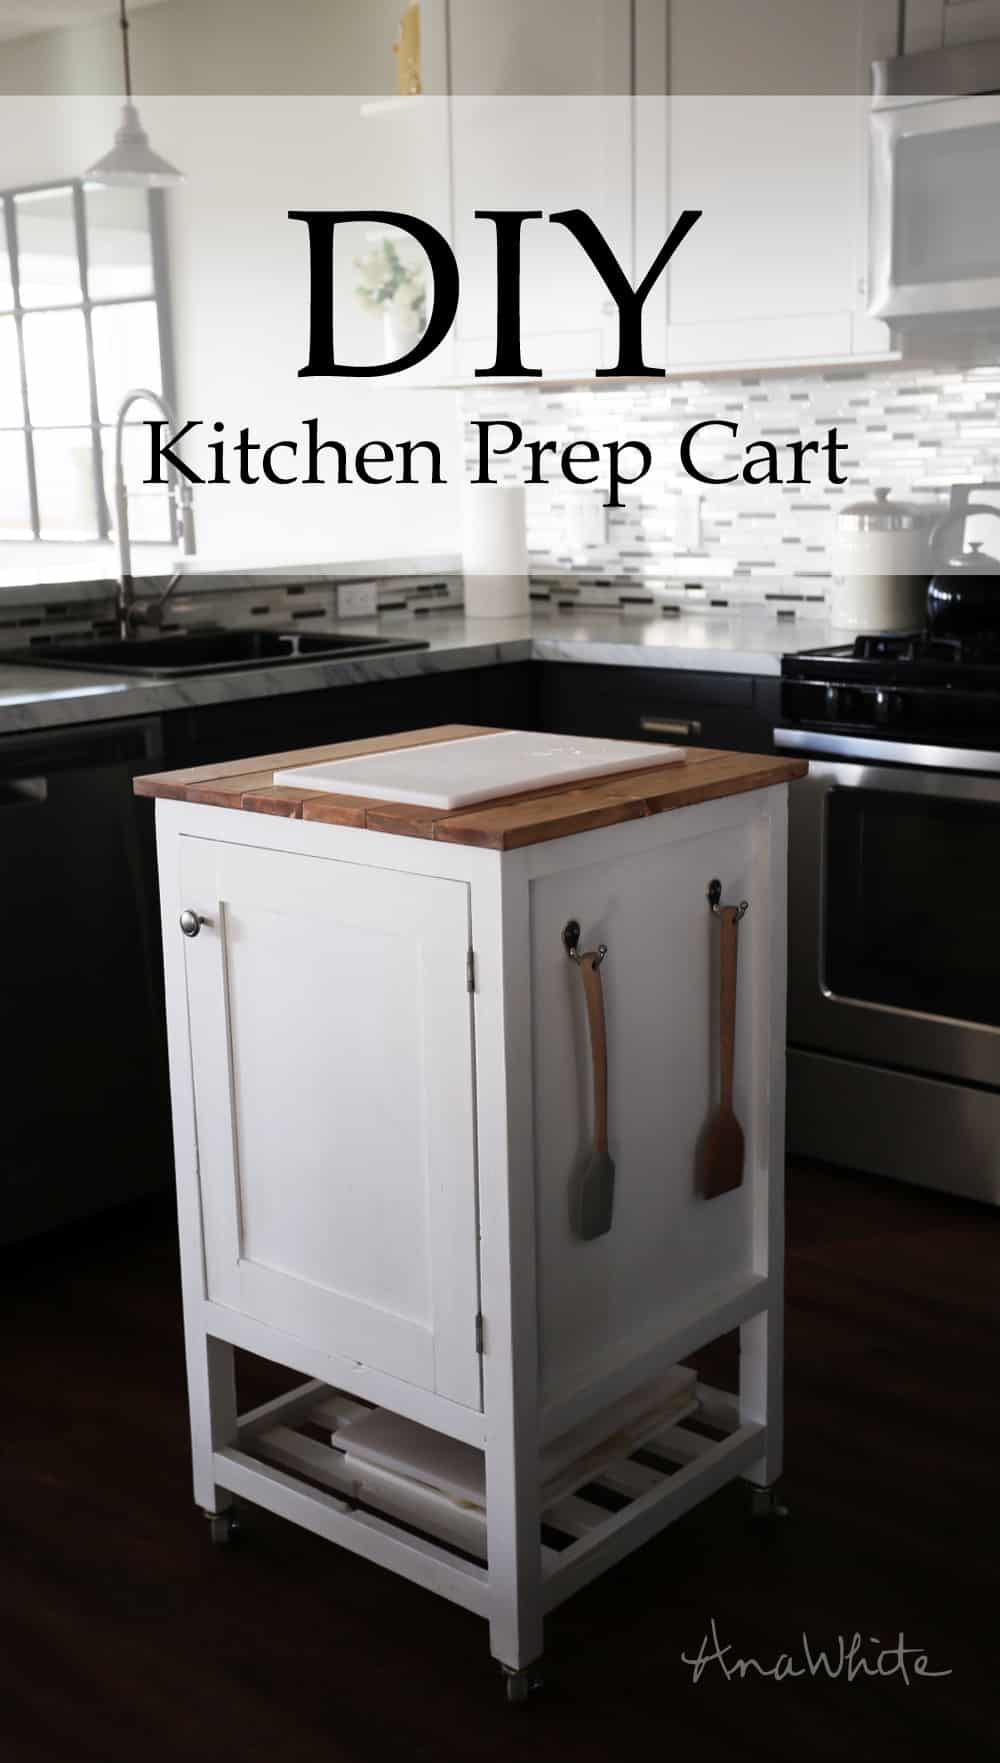 Diy mini kitchen prep cart